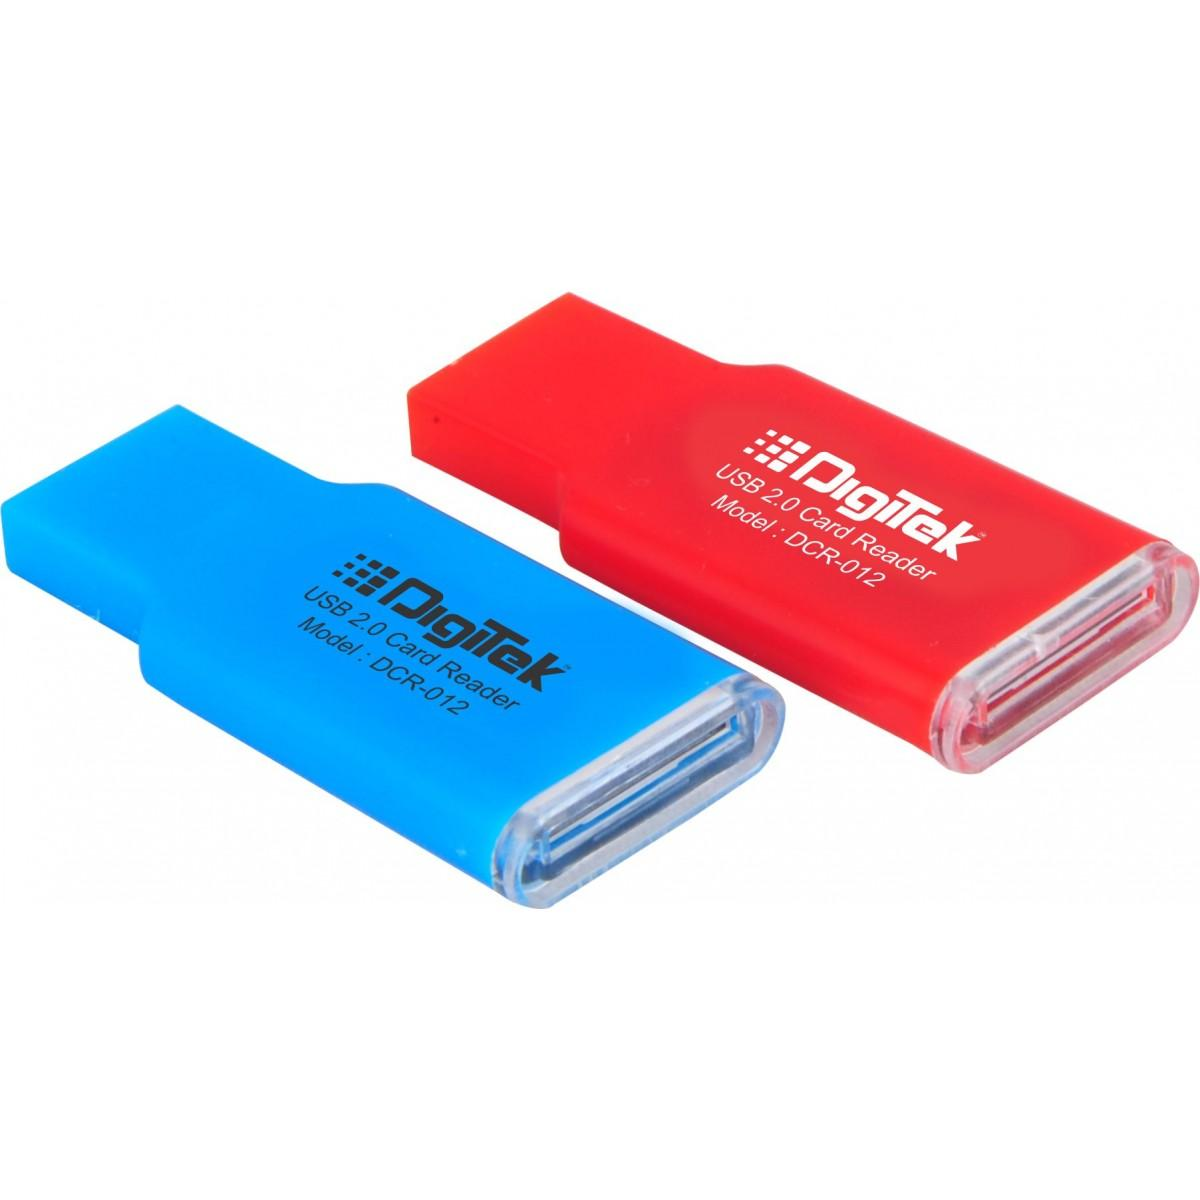 Micro SD Memory Card Reader USB 2.0 High Quality Best For DSLR DIGITAL CAMERAS MP3 Players Music Cars Downloading PCs Gaming PCs (Fast Data Transfer Rate)